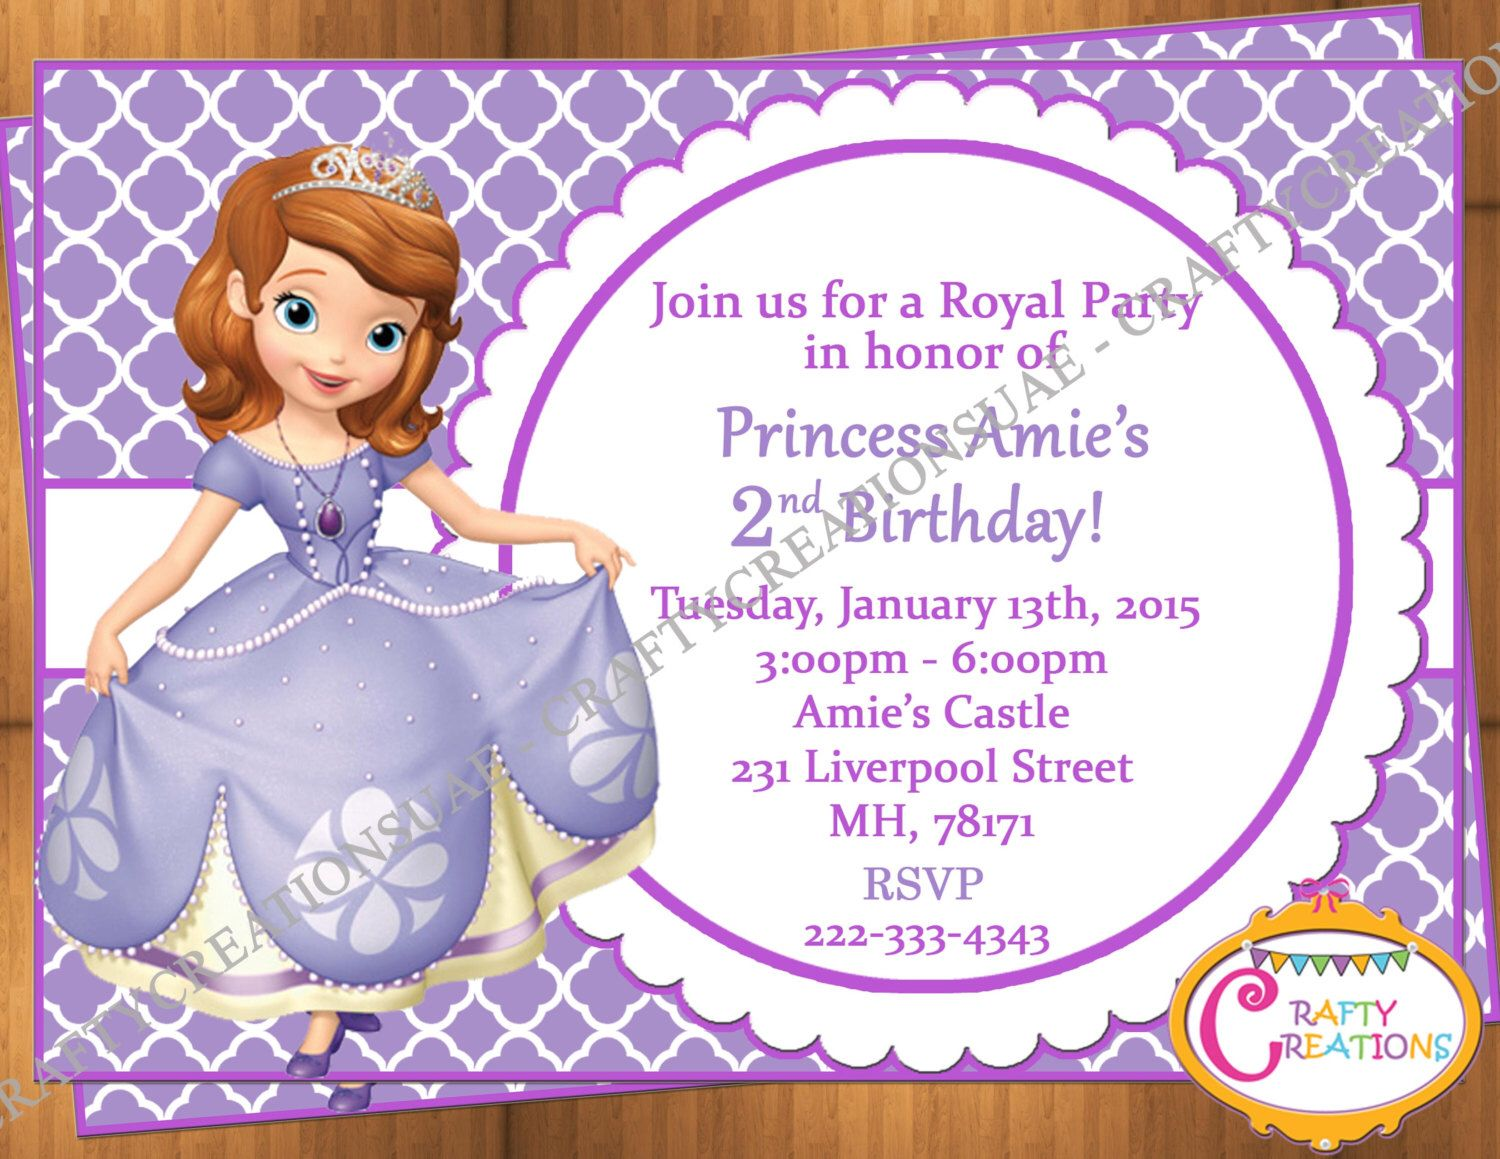 Sofia the First Invitation - Princess Sofia Birthday Party Invite ...